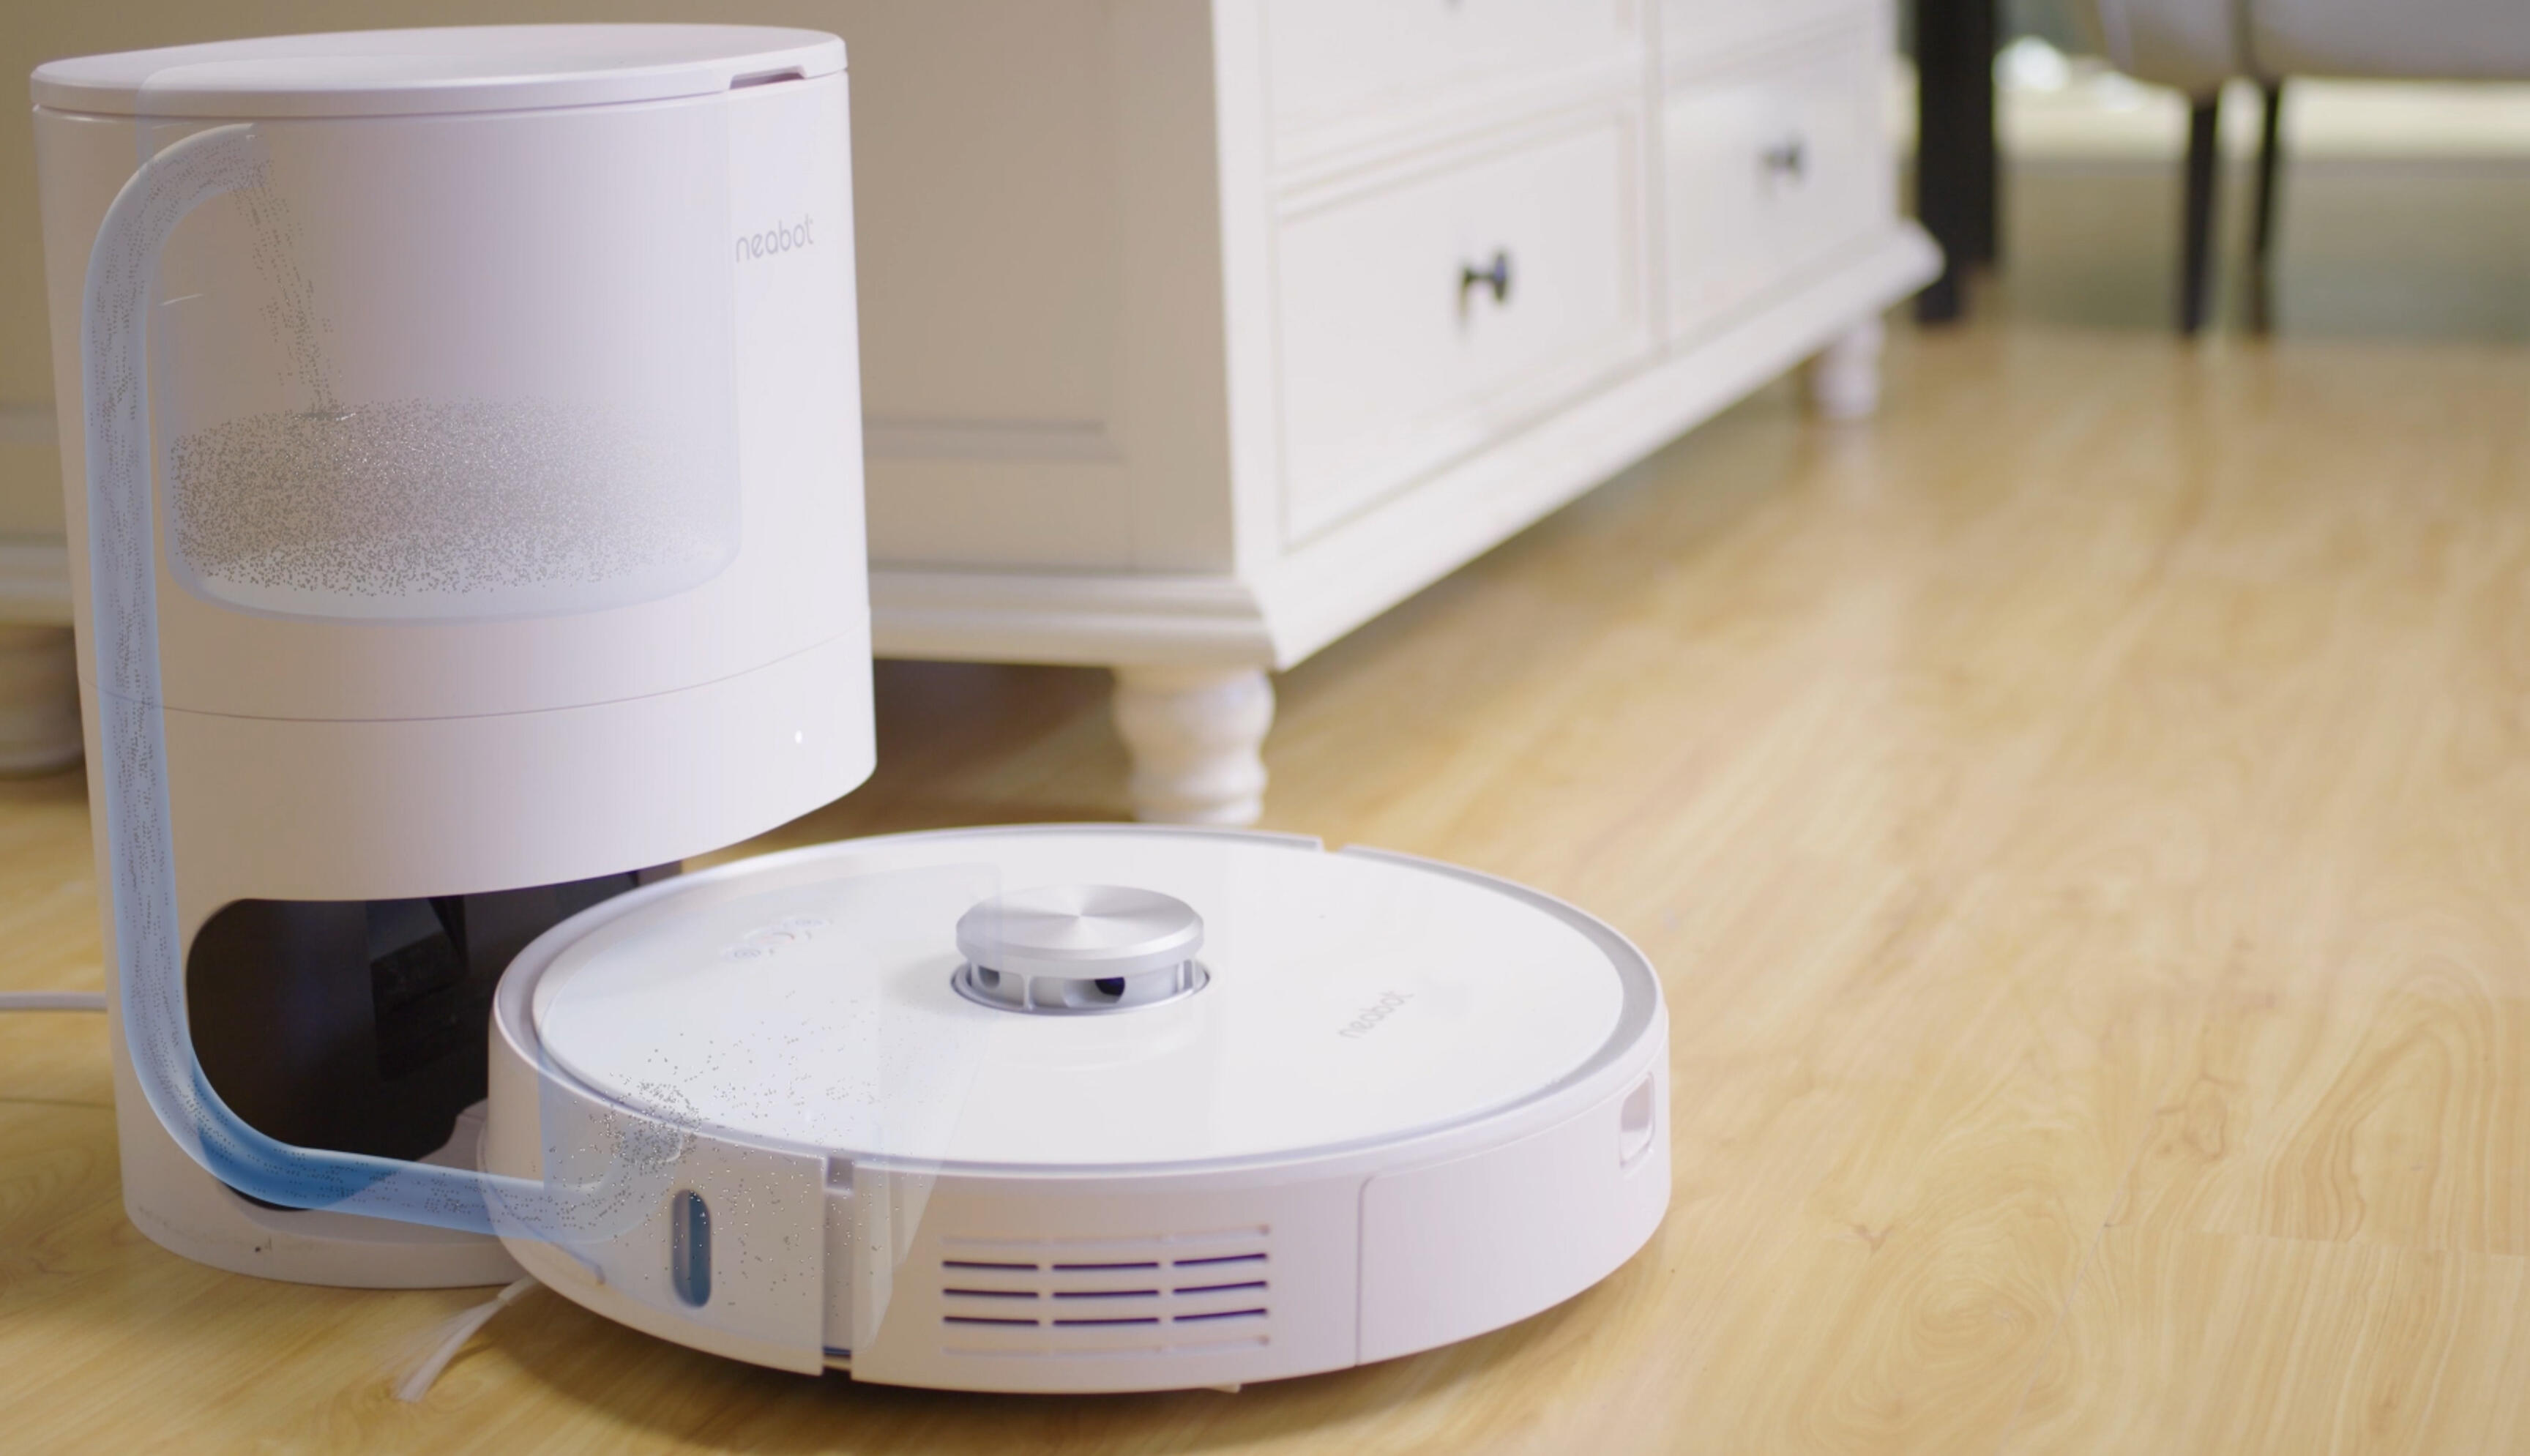 Get the Neabot self-emptying robot vacuum for $365, an all-time low price     - CNET